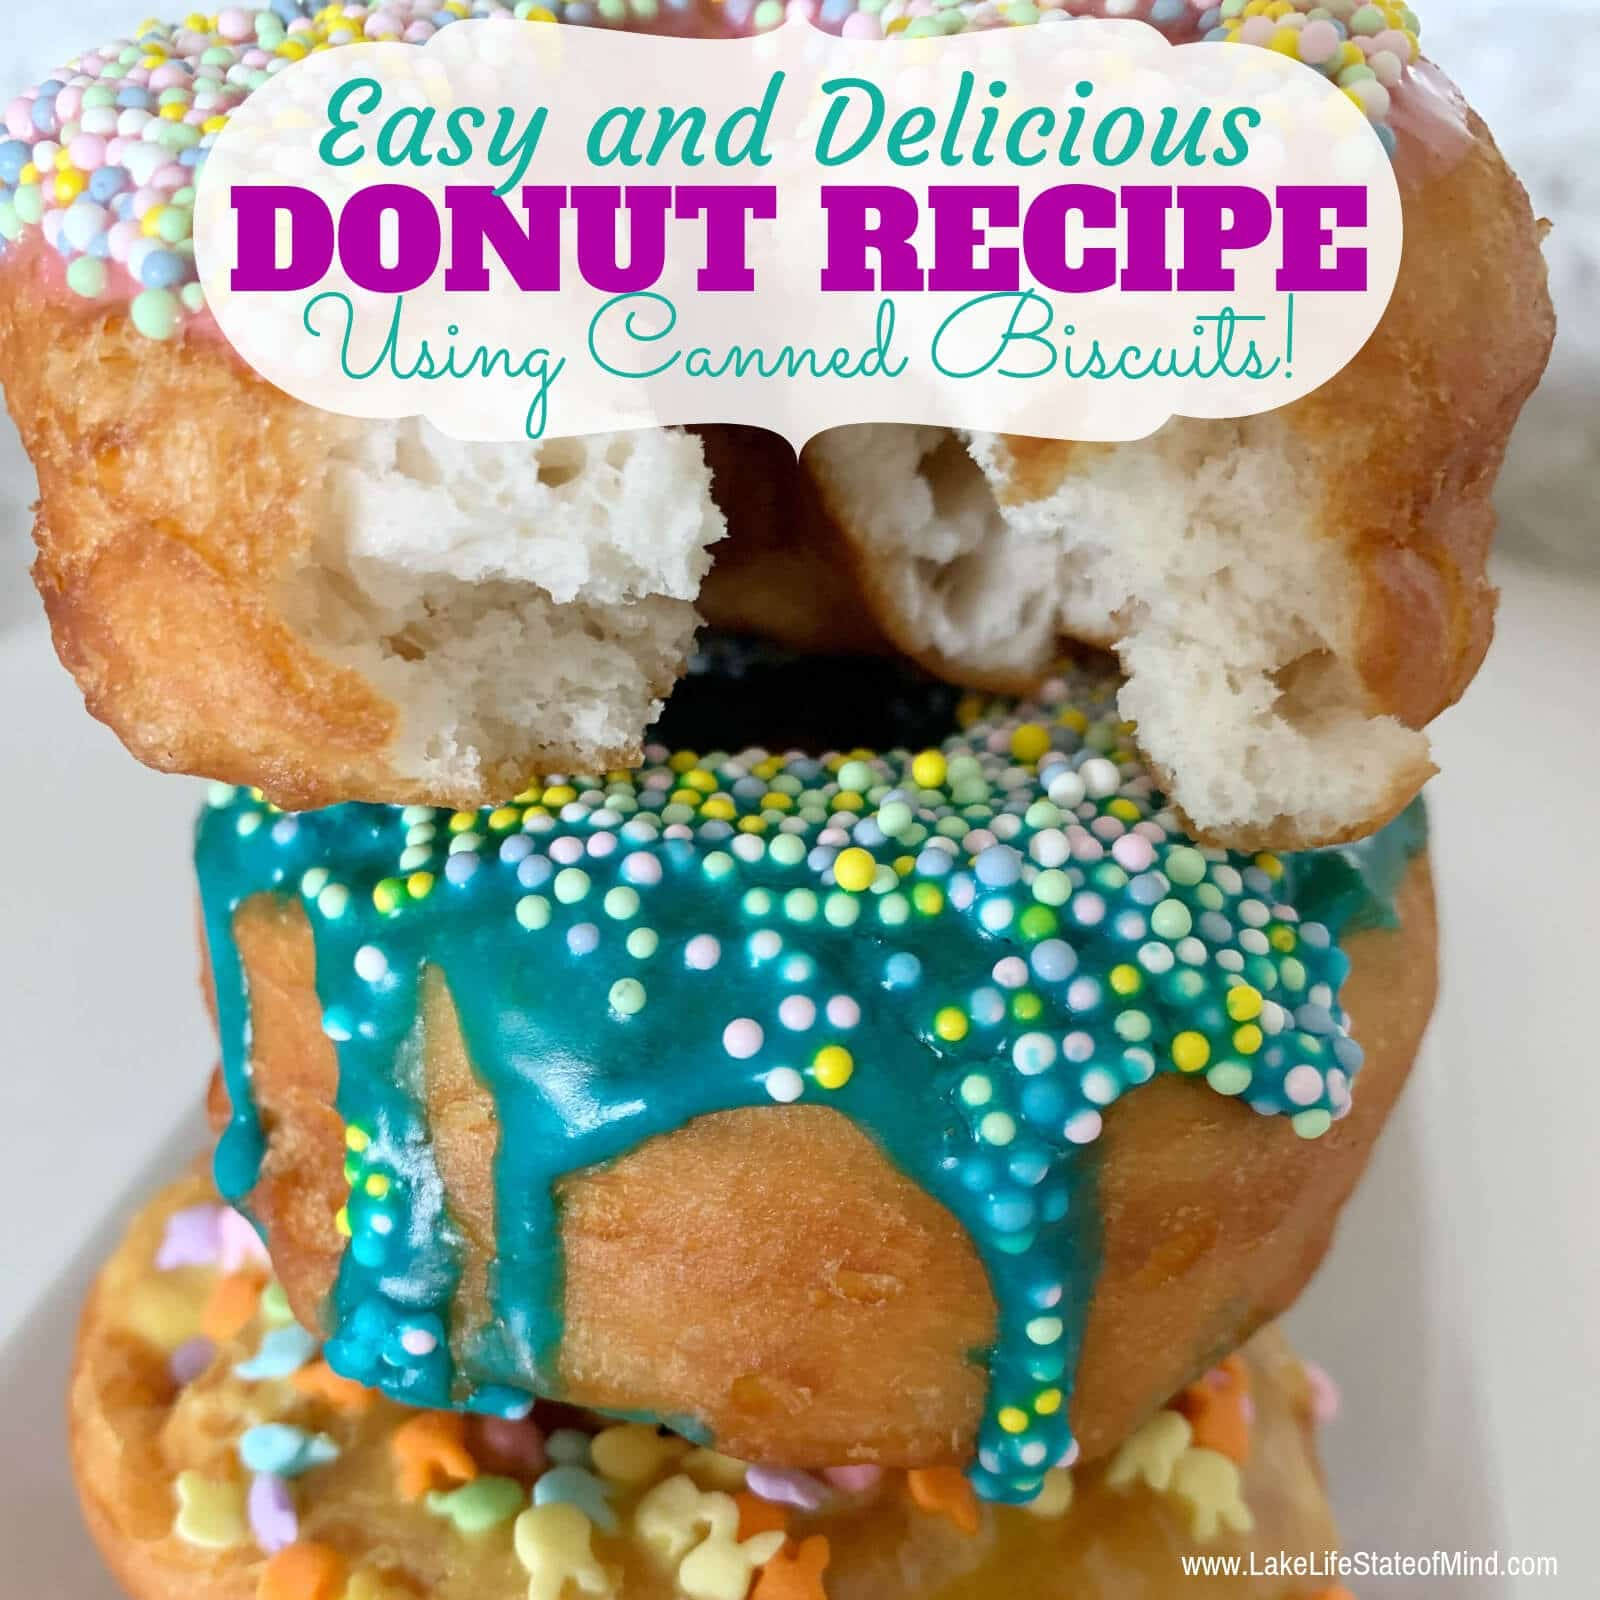 The Easiest Donut Recipe of All Time!